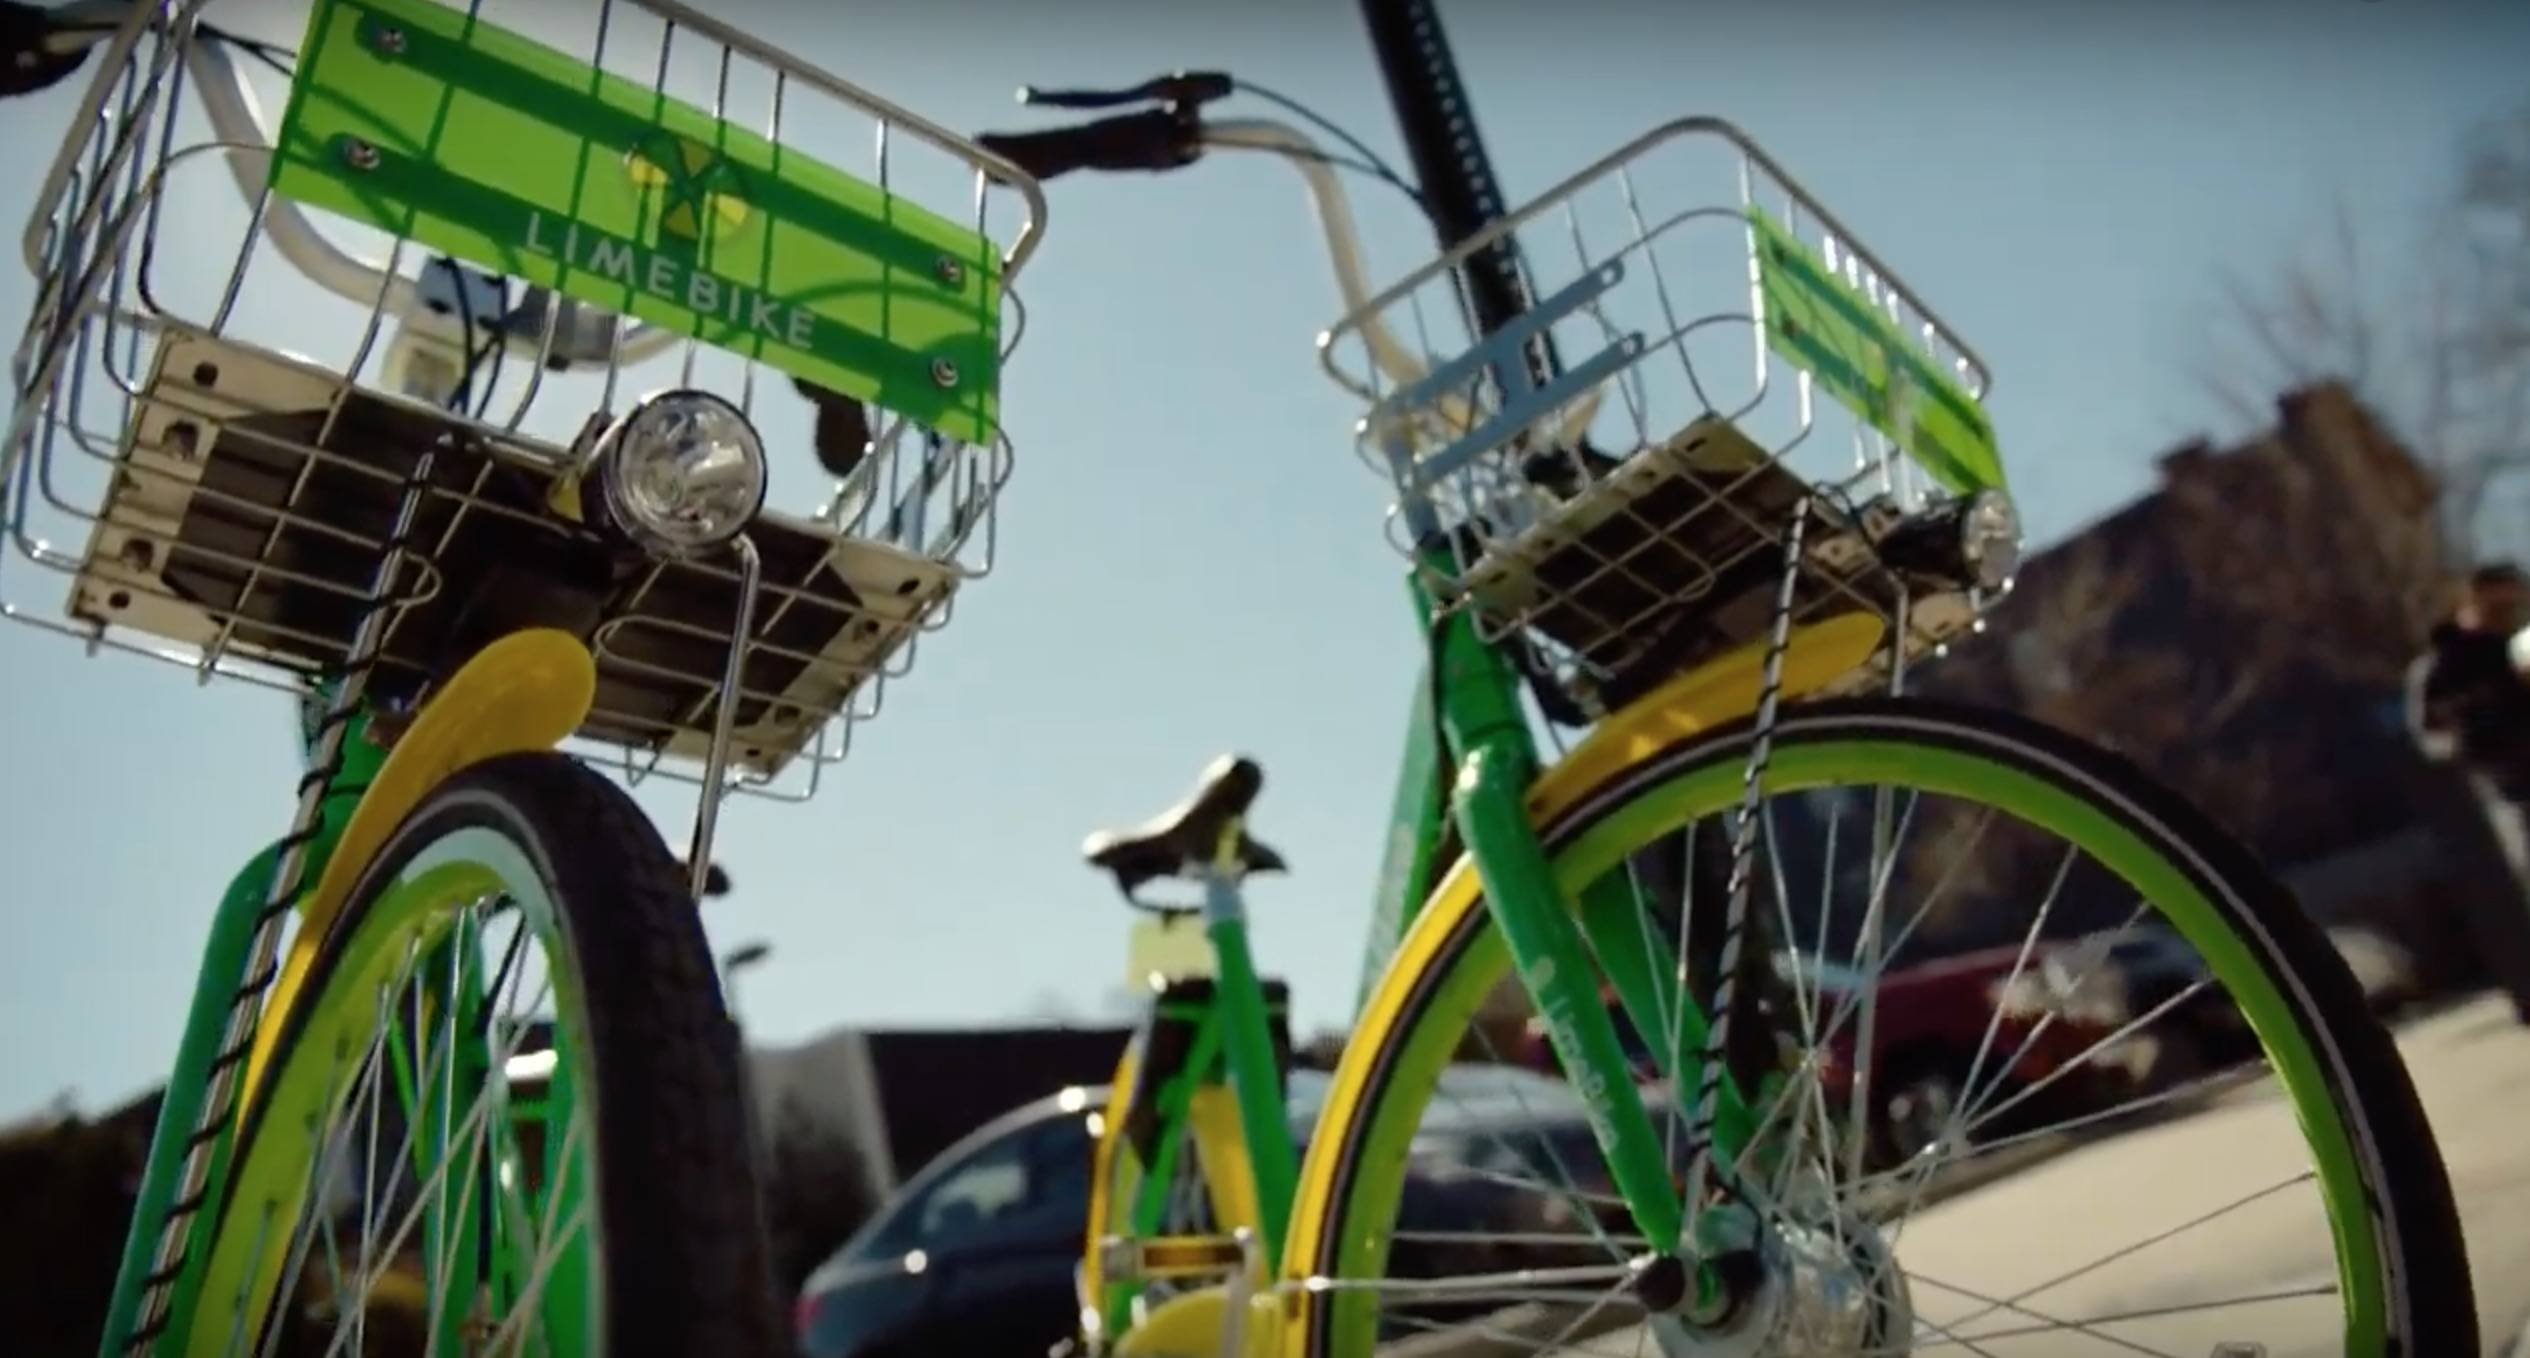 Google Maps now lets you see available Lime bikes, scooters ... on google employee on a bicycle, google view my house, google bikes on campus, sketchup bicycle, bing maps bicycle, google austin texas, google android,